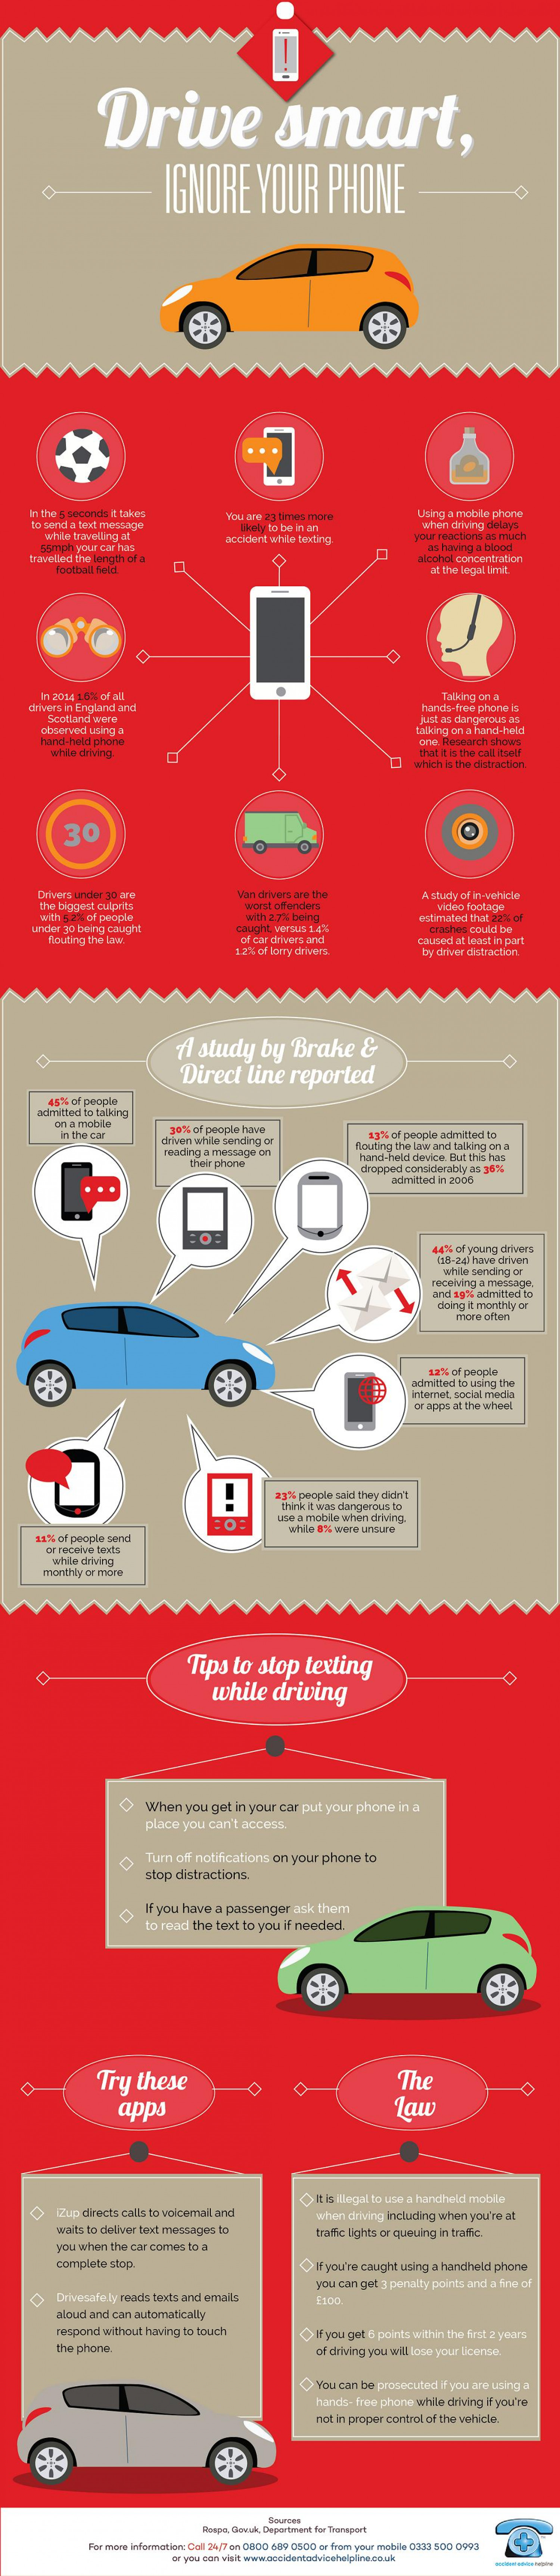 Drive Smart, Ignore Your Phone Infographic